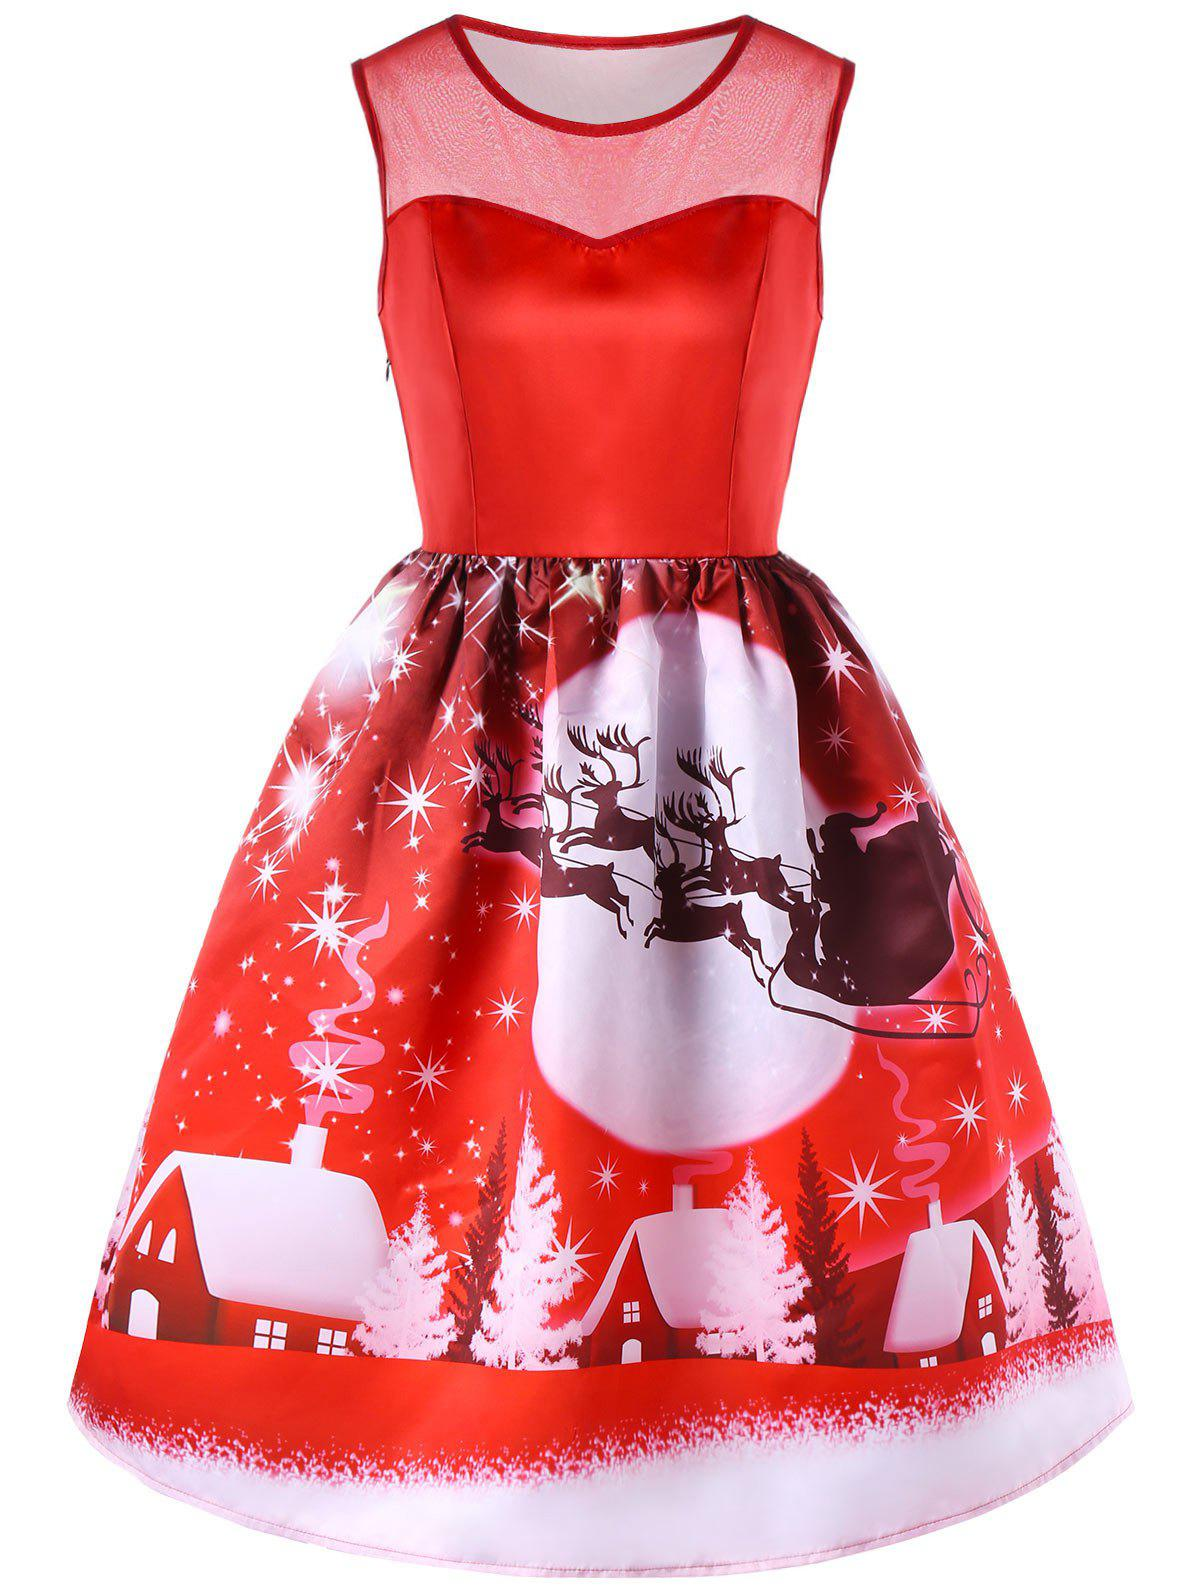 Christmas Printed Mesh Insert Sleeveless DressWOMEN<br><br>Size: L; Color: RED; Style: Vintage; Material: Polyester; Silhouette: Fit and Flare; Dresses Length: Mid-Calf; Neckline: Round Collar; Sleeve Length: Sleeveless; Pattern Type: Print; With Belt: No; Season: Fall,Spring; Weight: 0.3520kg; Package Contents: 1 x Dress;